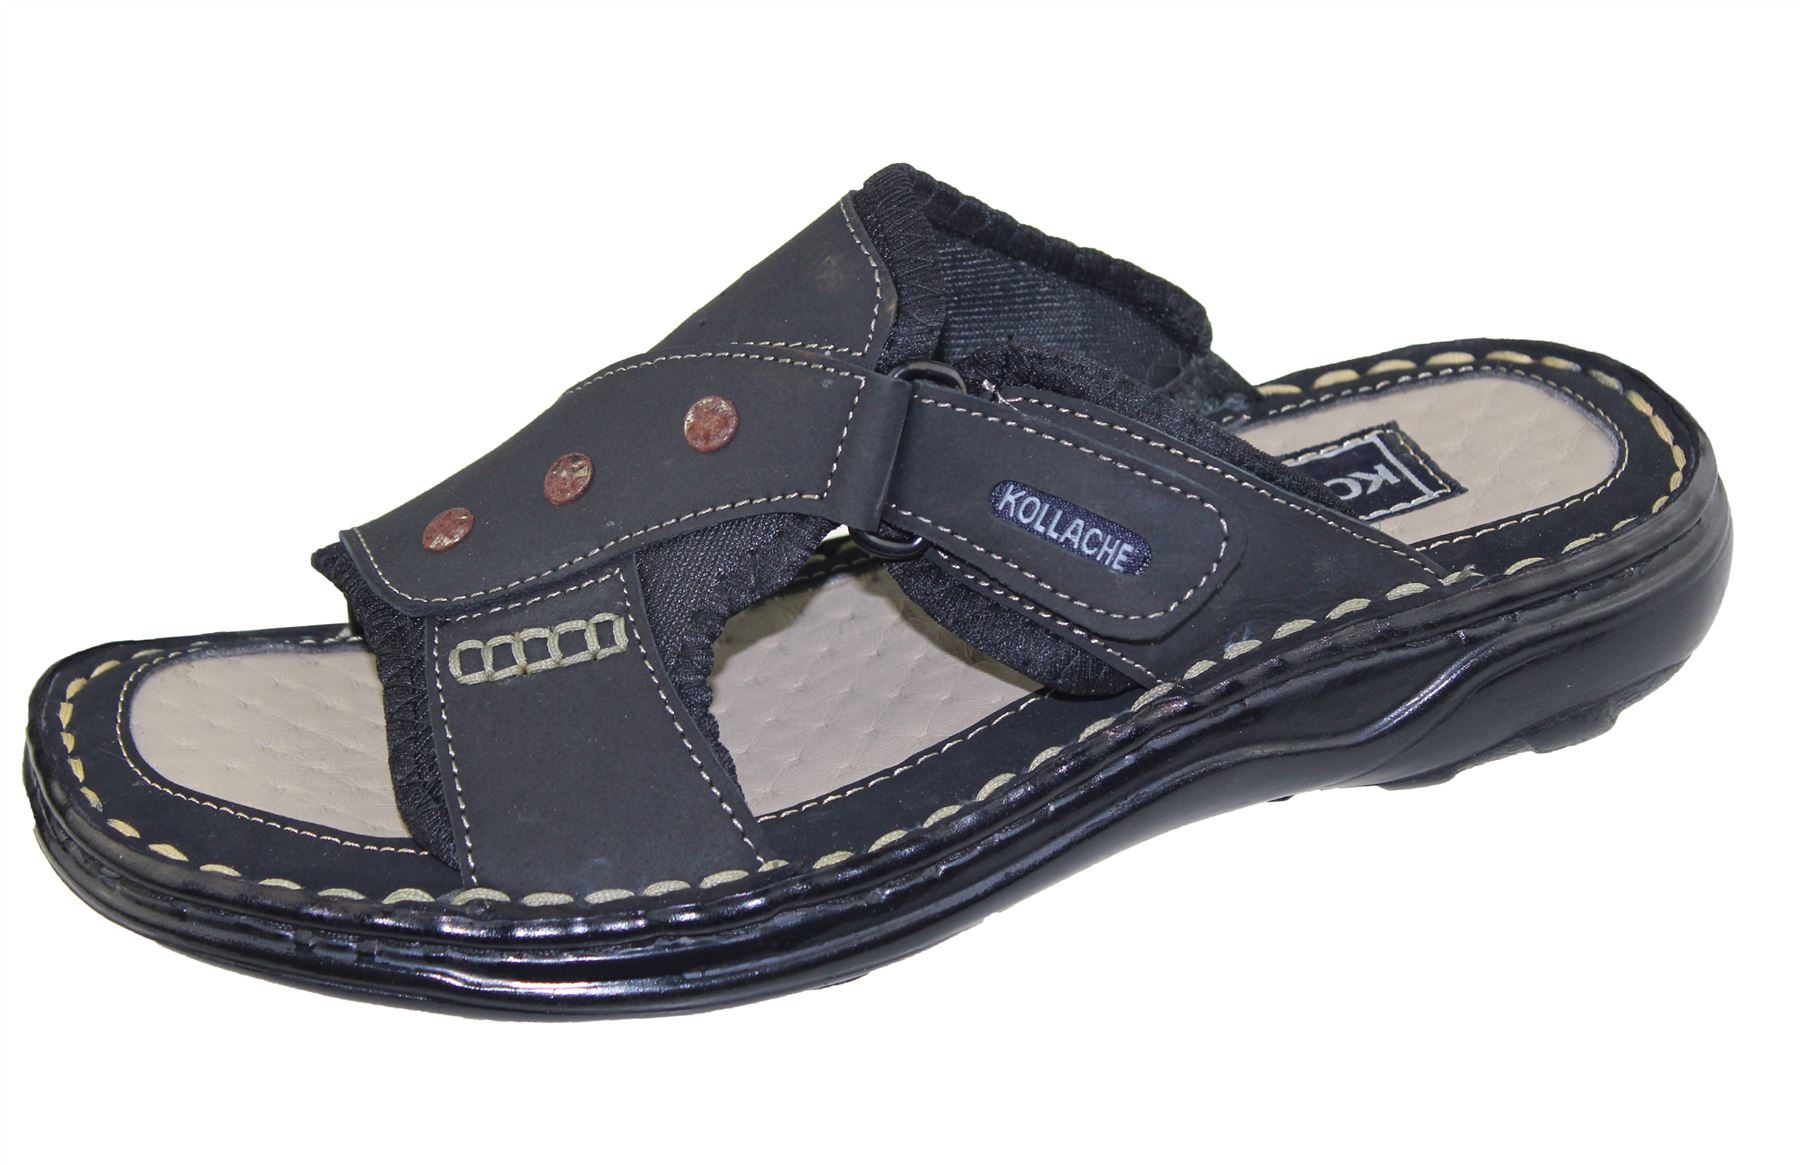 Mens Slipper Sports Sandal Buckle Beach Walking Fashion ...